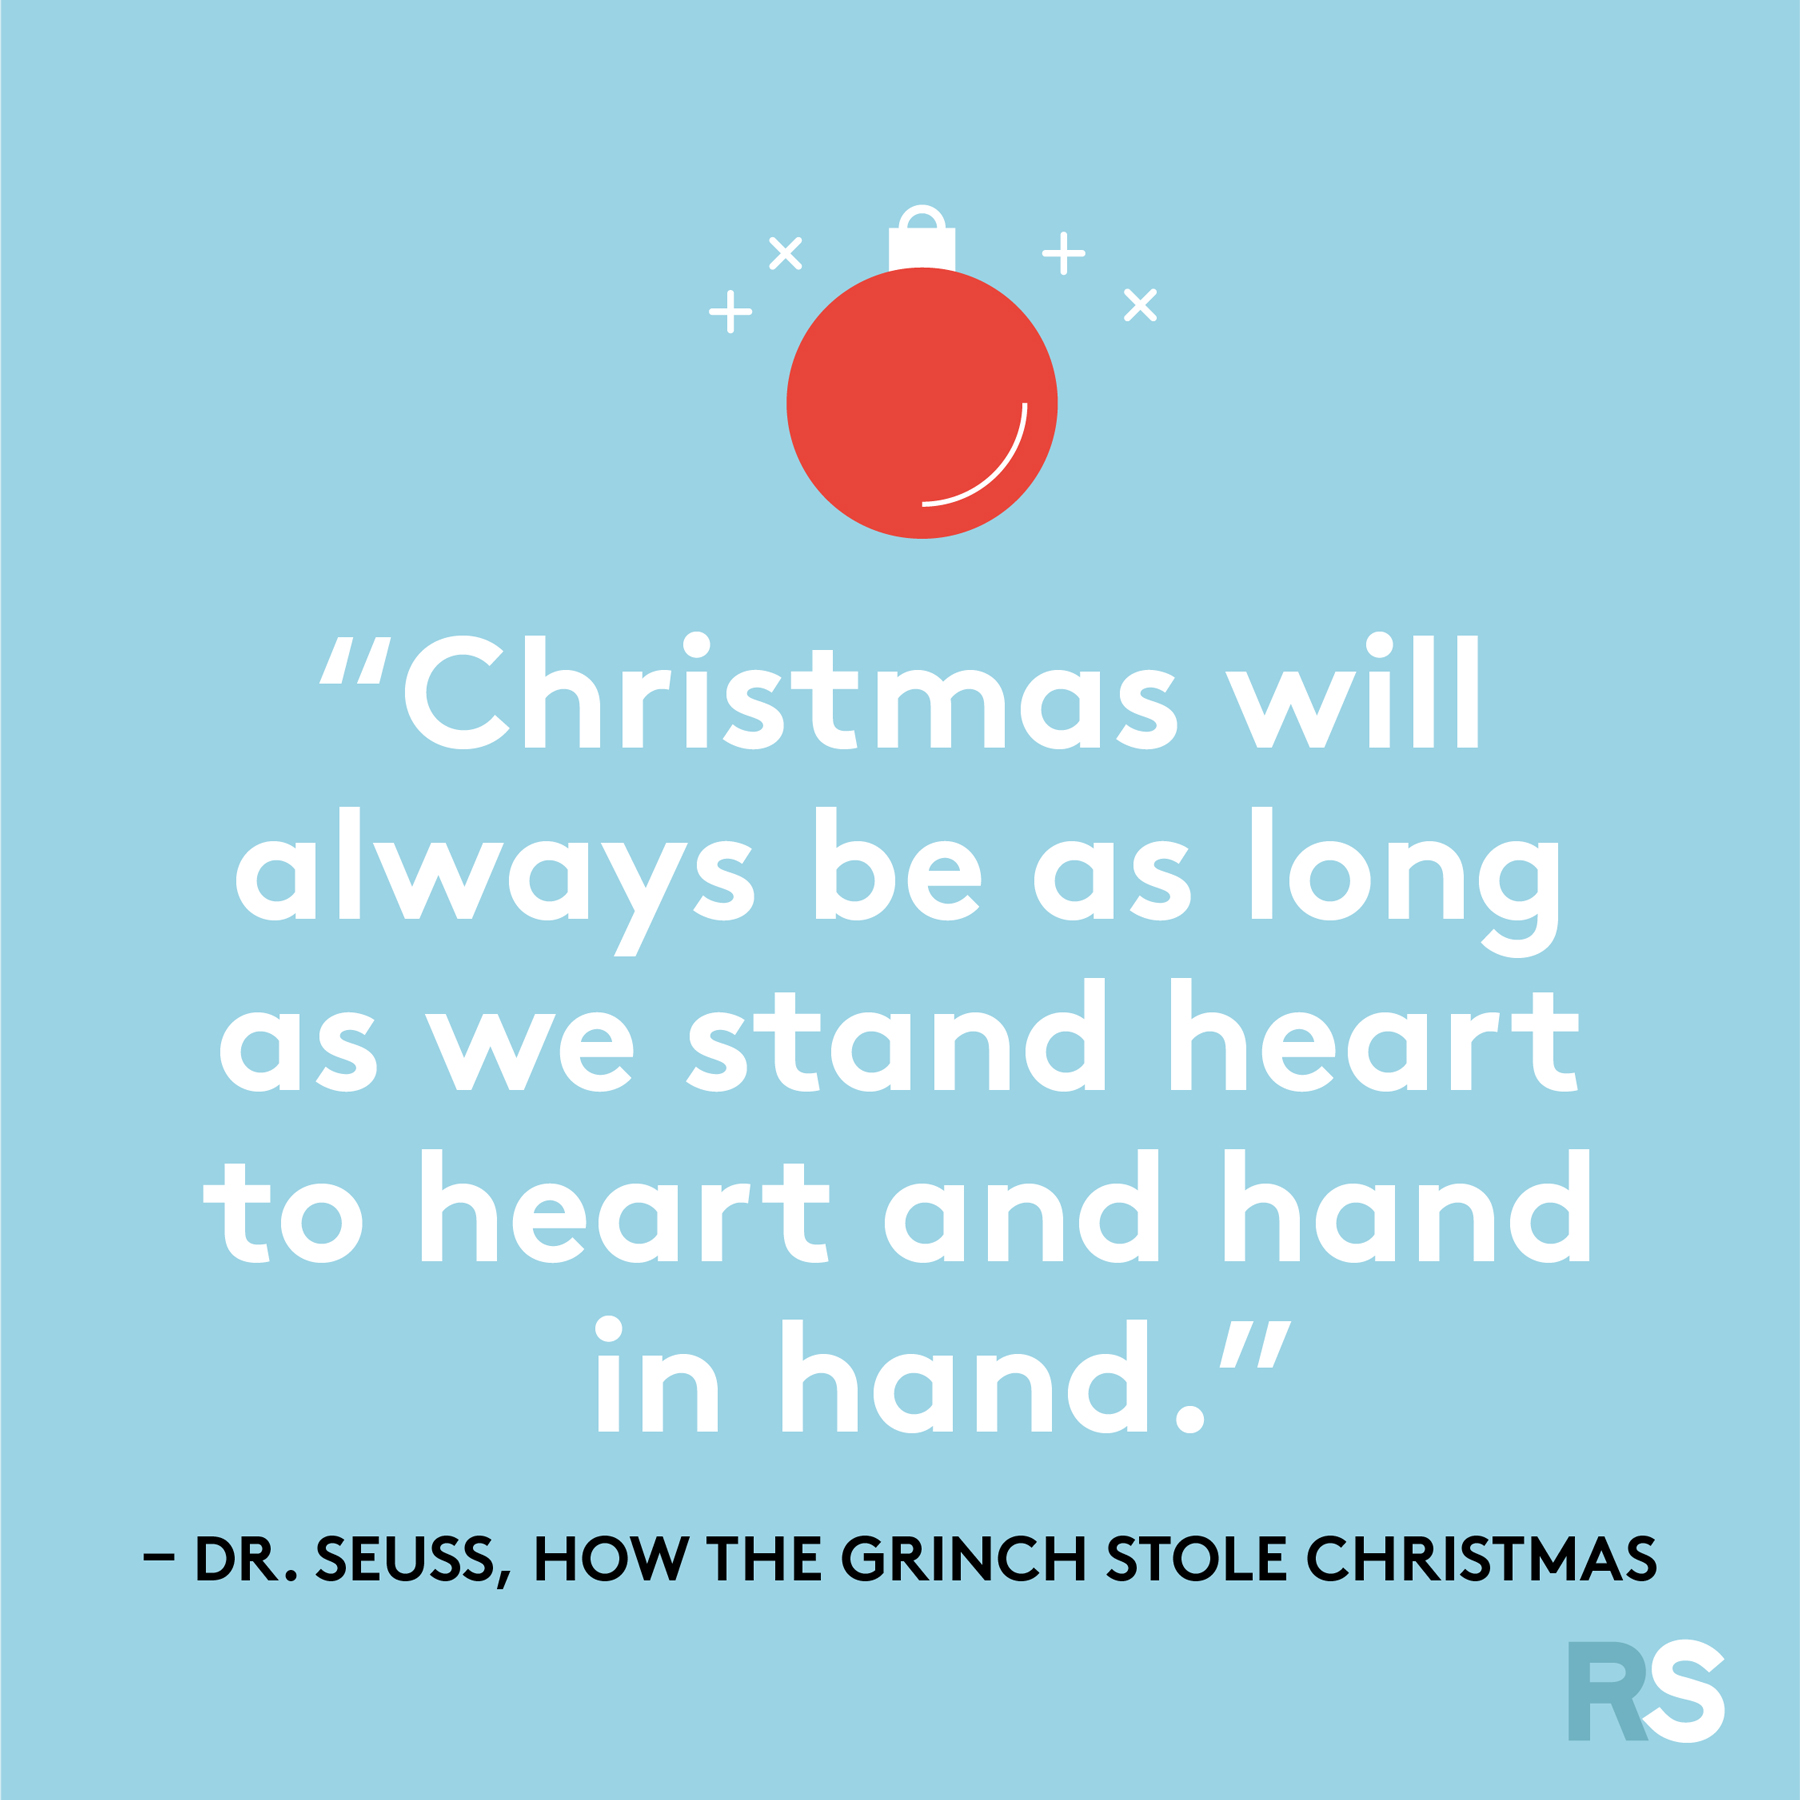 Best Christmas quotes - Dr. Seuss, How the Grinch Stole Christmas